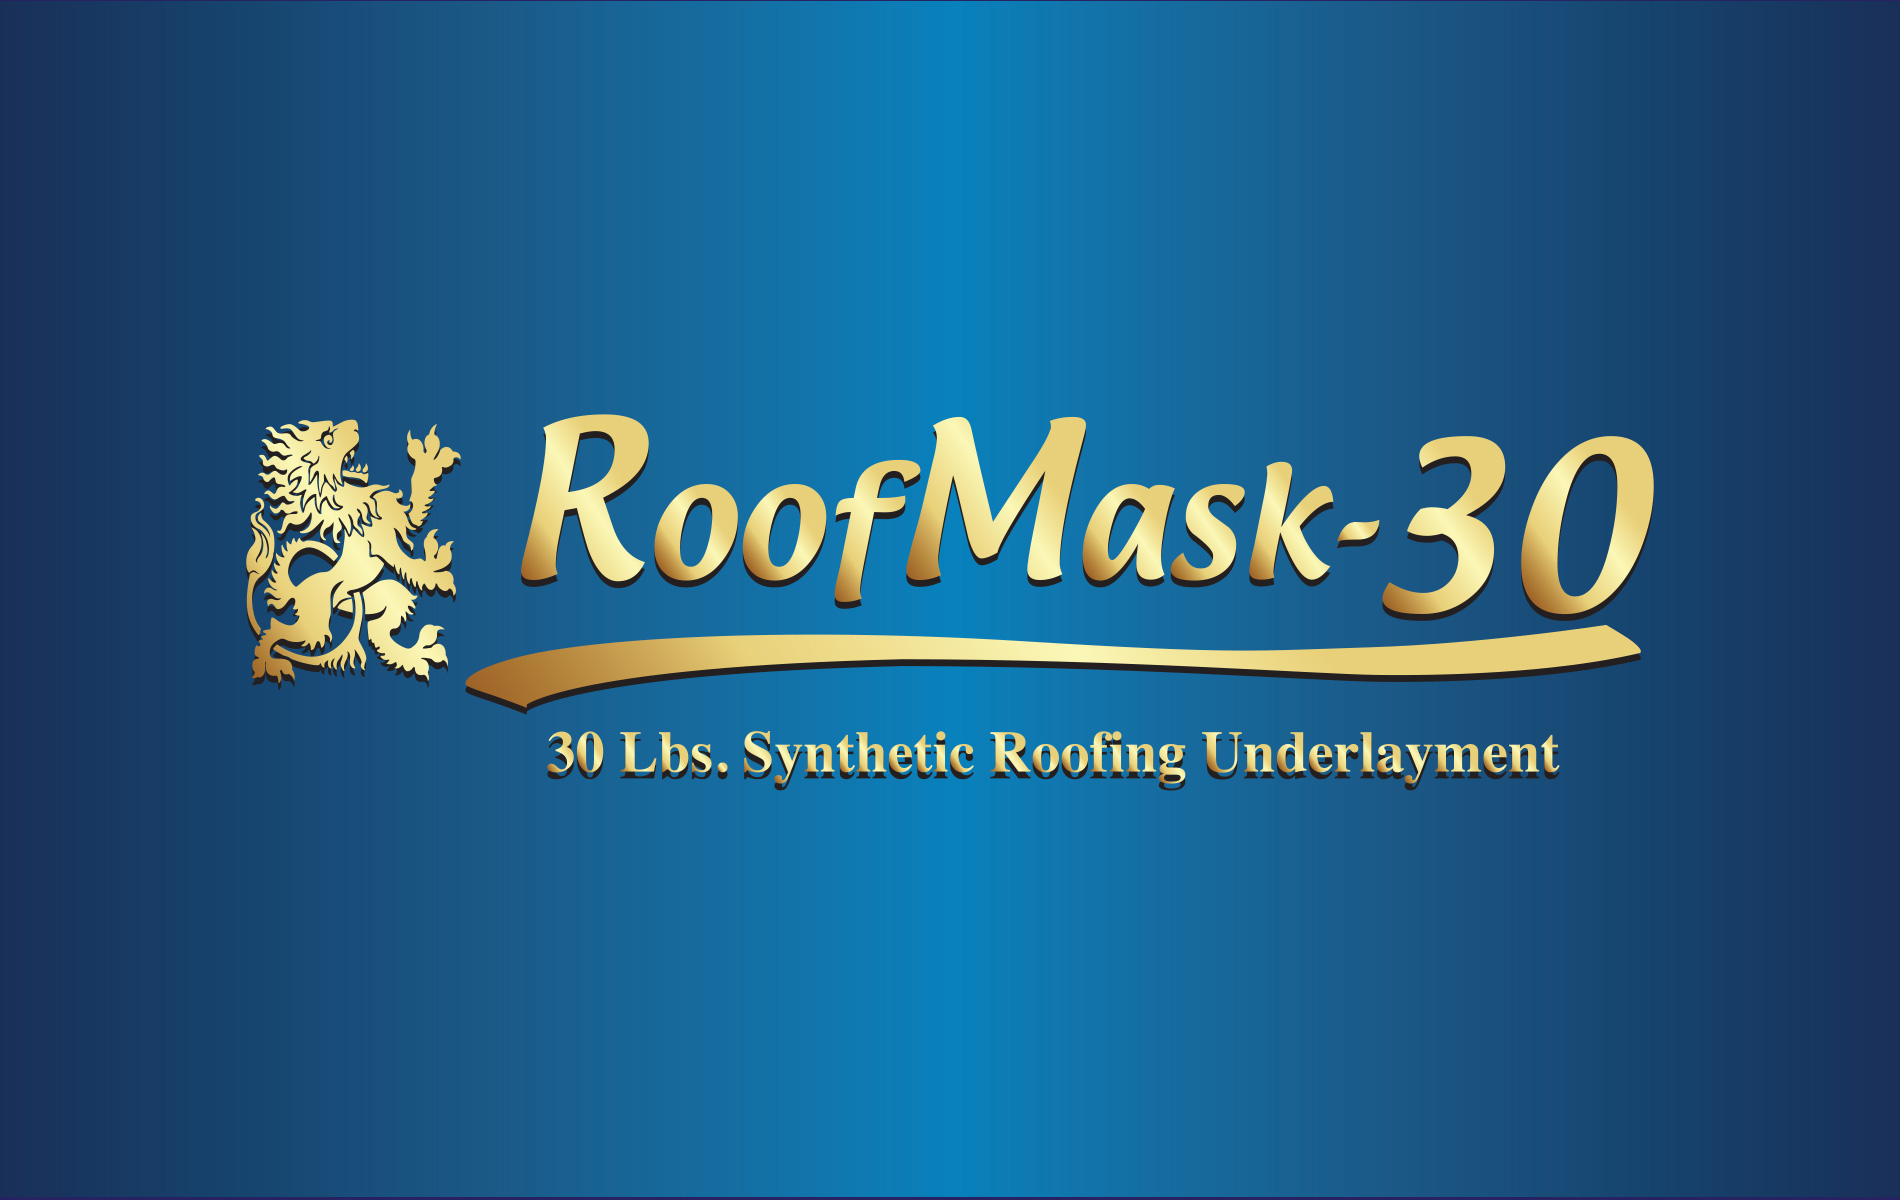 Roofmask Ham Building Supplies